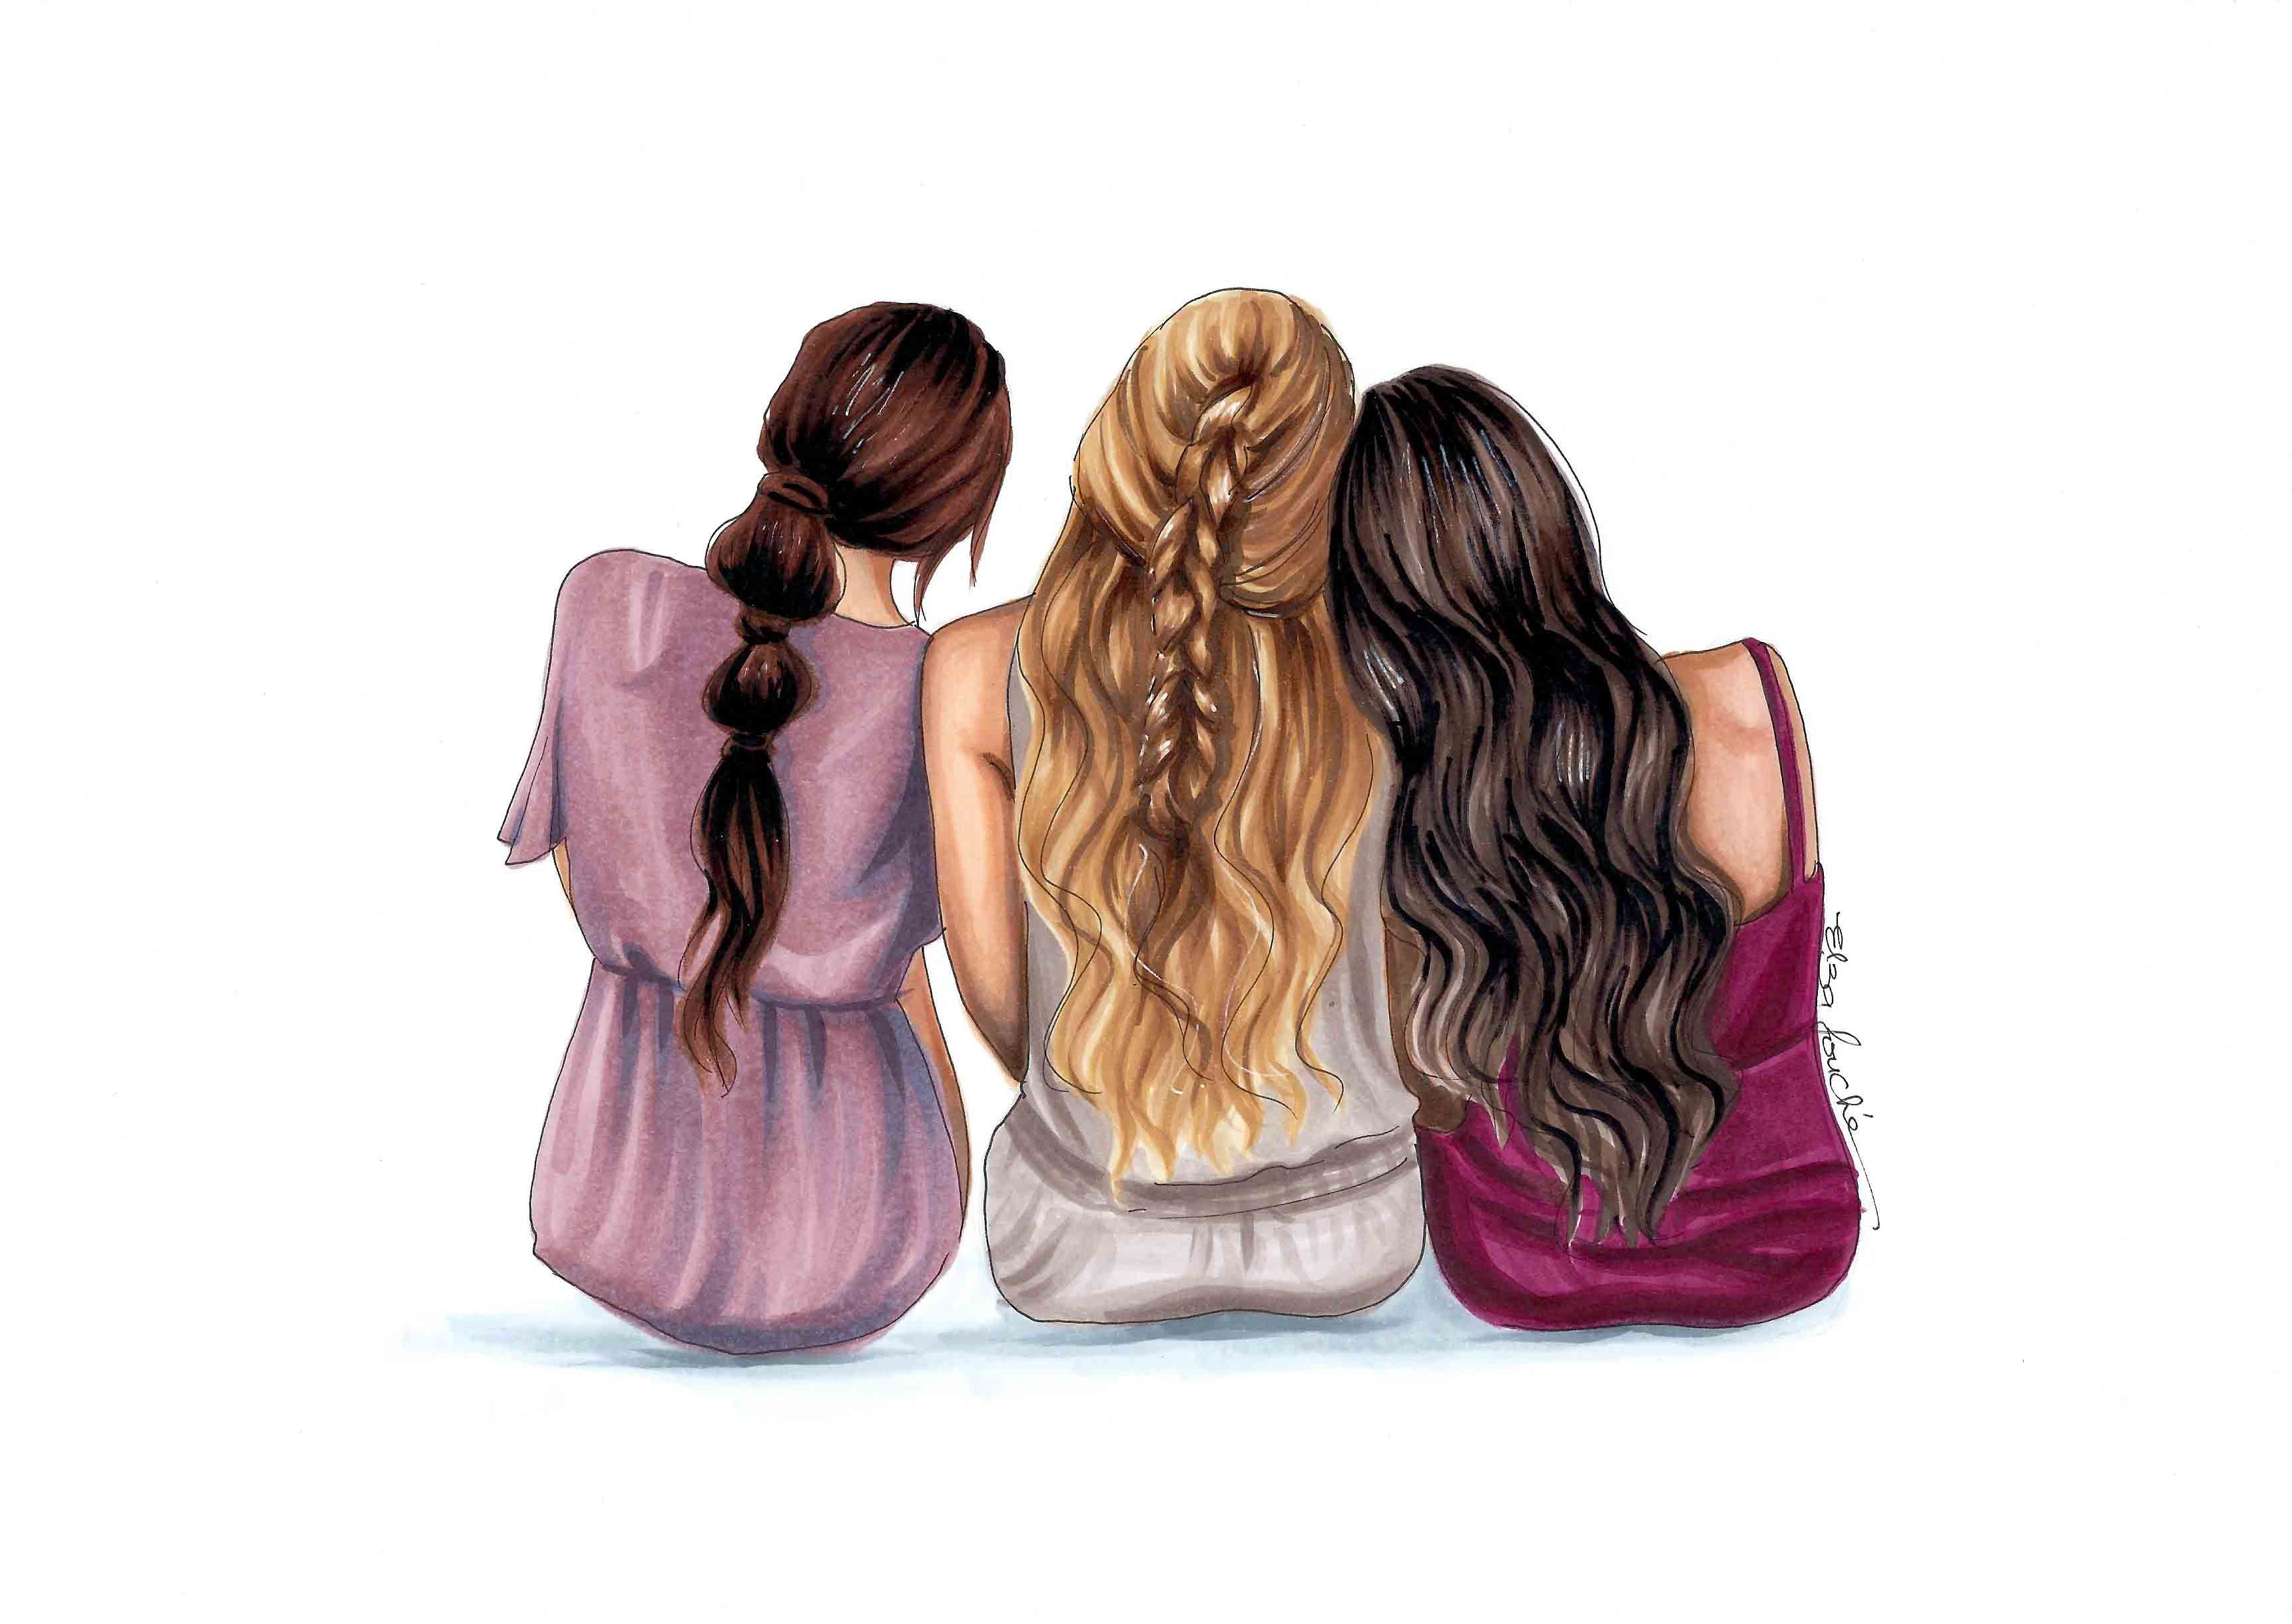 Life Is Tough True Friends Share The Difficulties Without